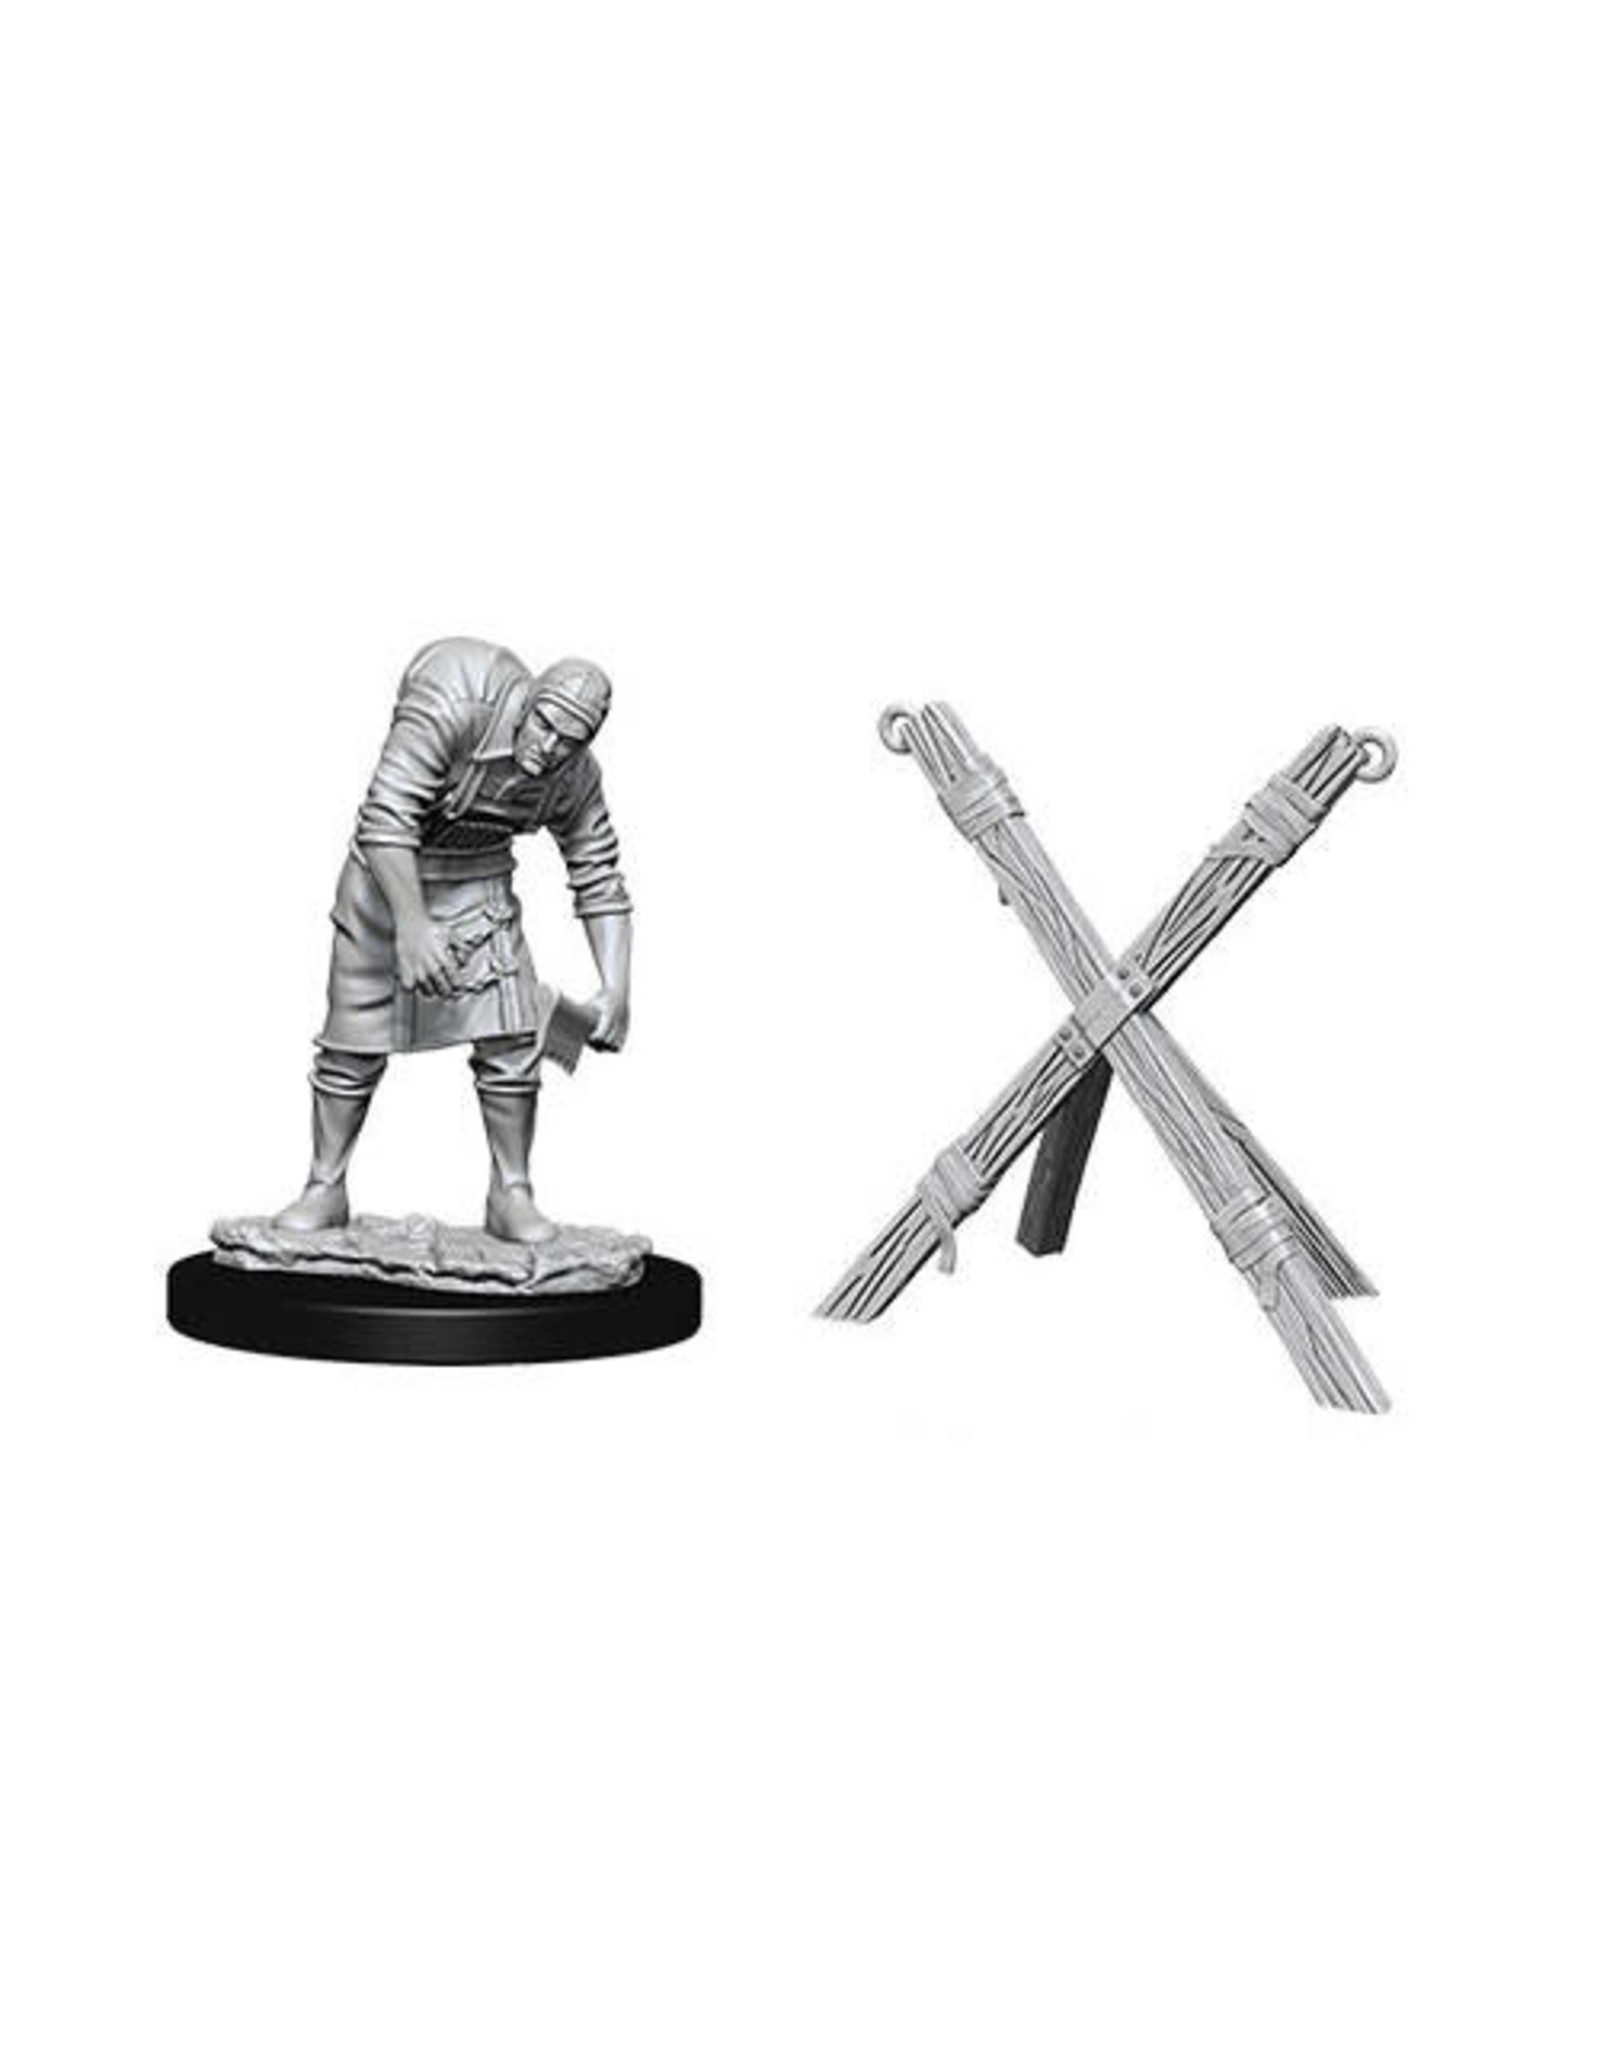 D&D Unpainted Minis: Assistant & Torture Cross